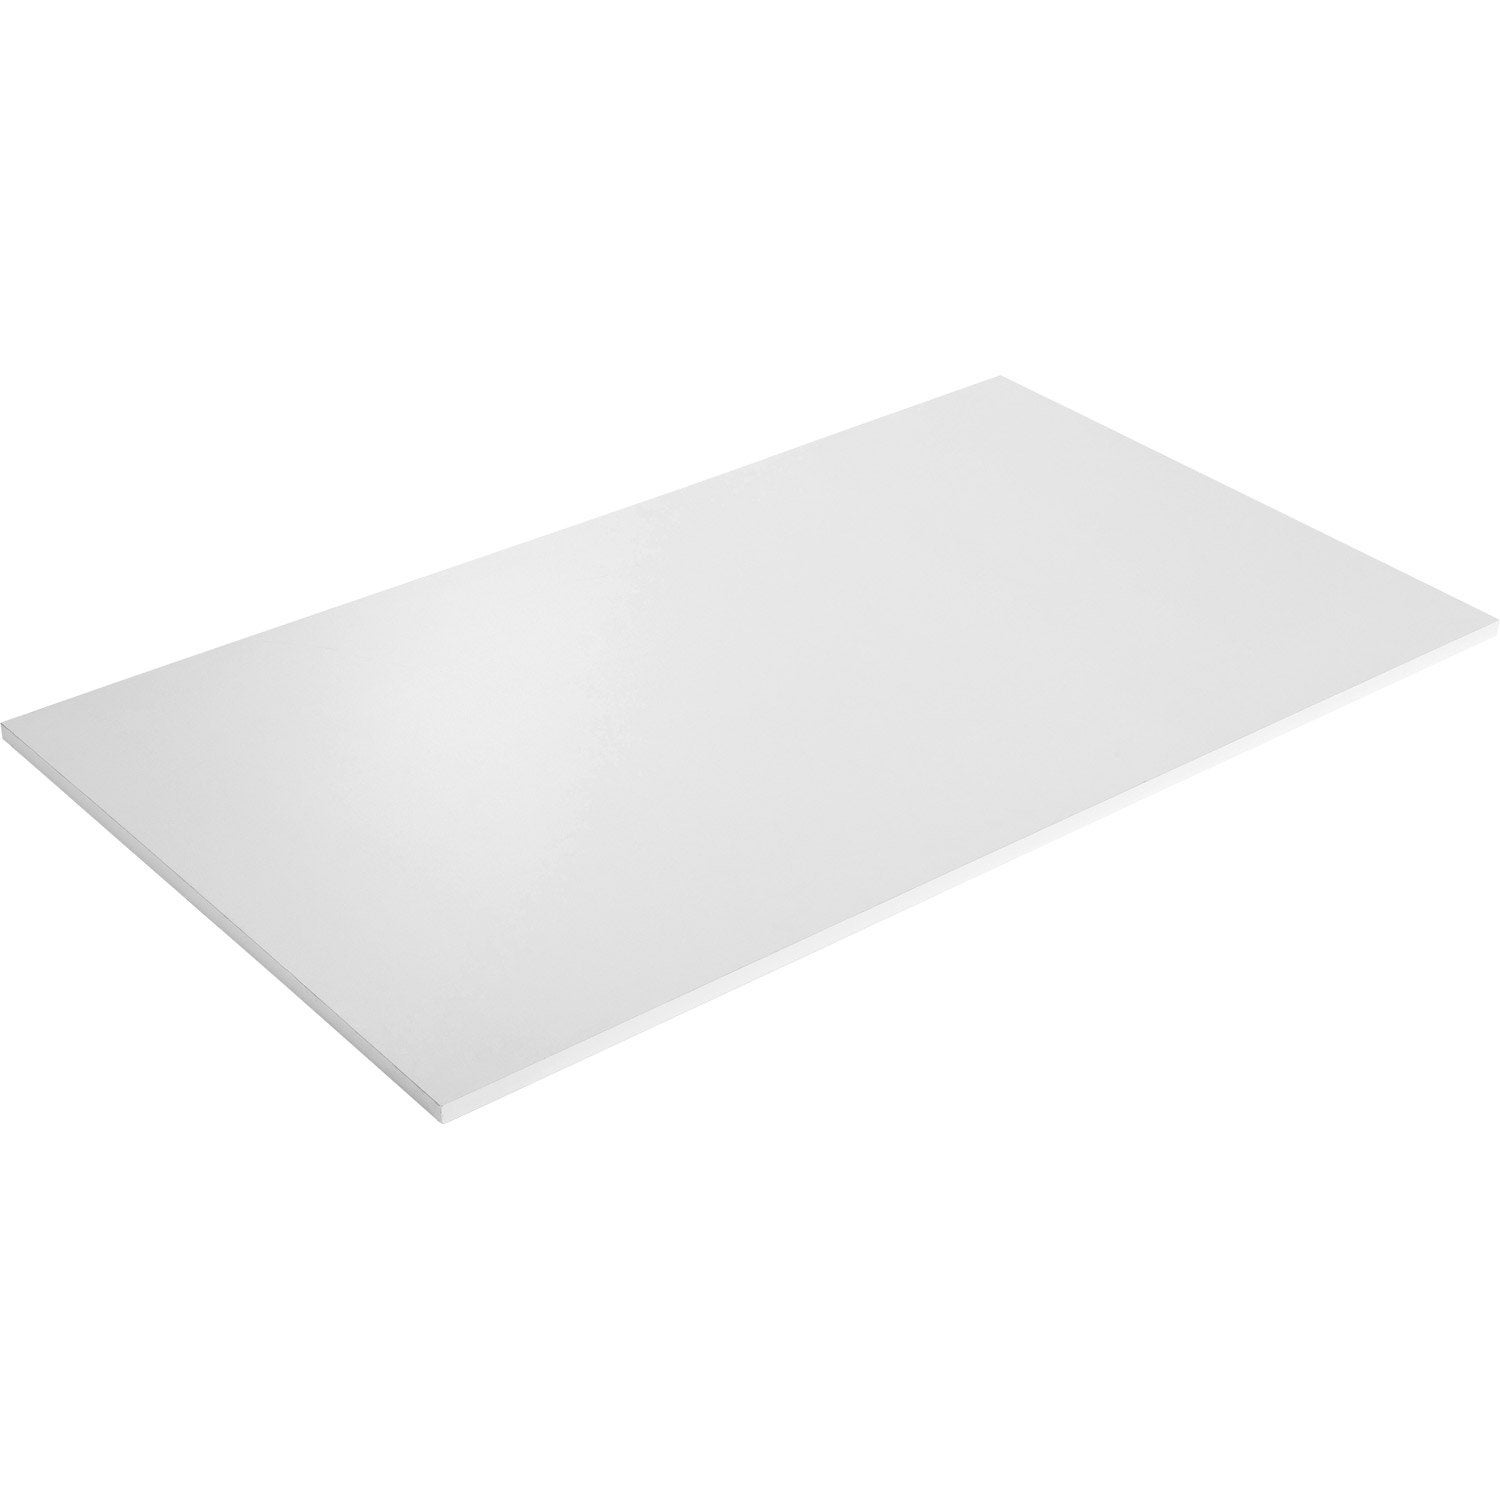 Plateau de table agglom r blanc x cm x mm leroy merlin - Coupe de verre leroy merlin ...